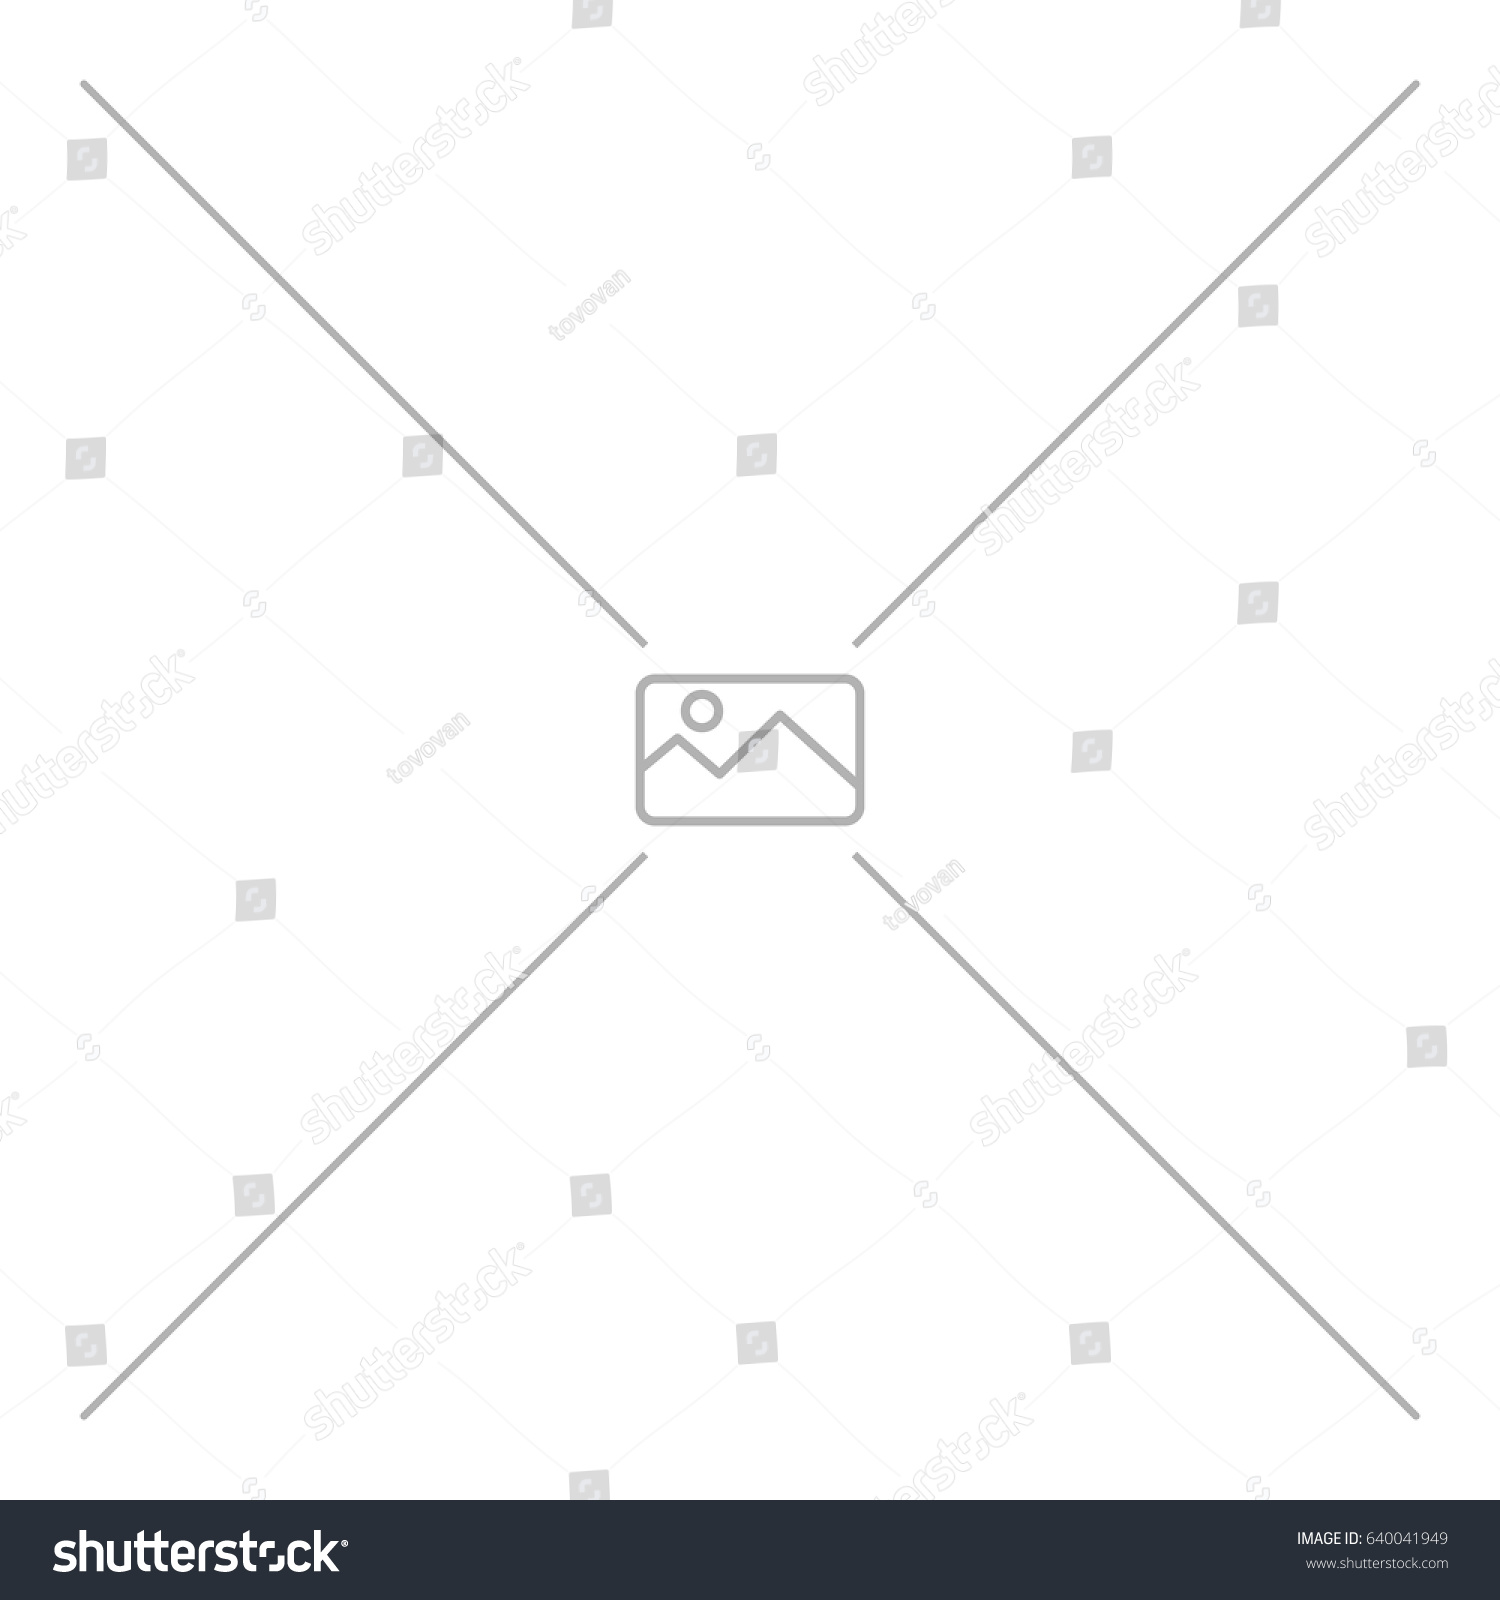 Missing Image Vector Illustration No Image Stock Vector (Royalty